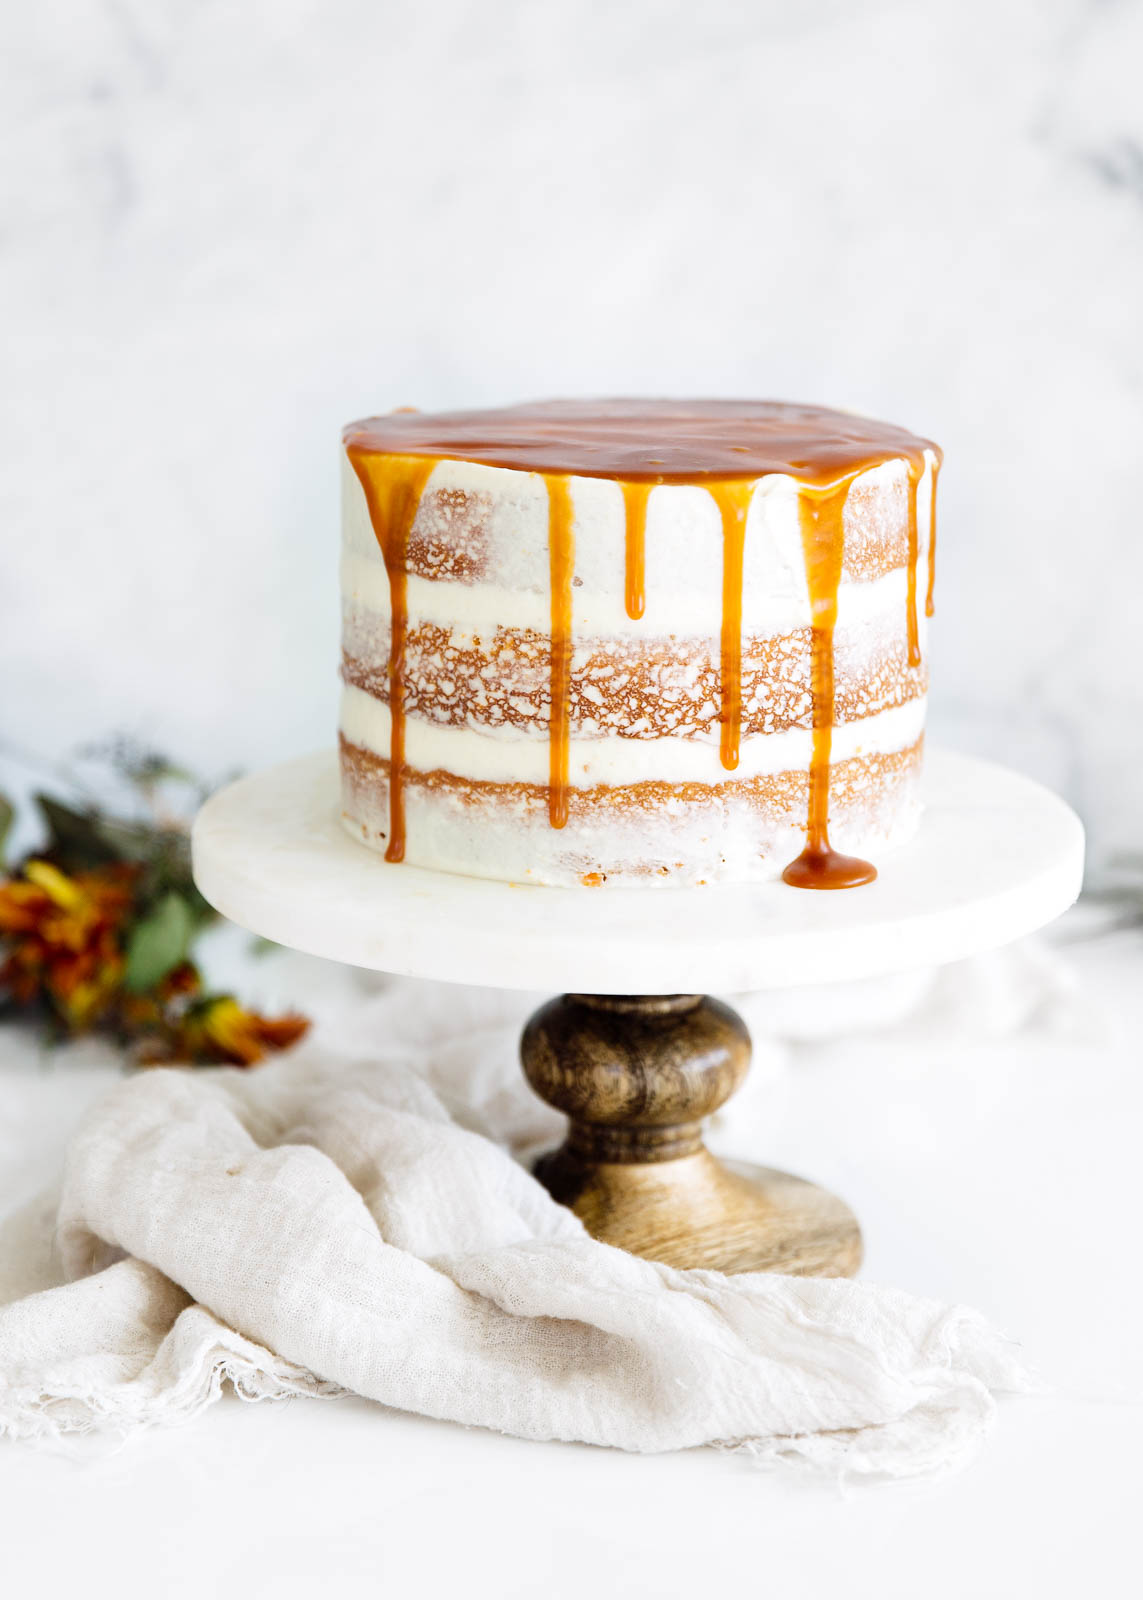 spiced carrot cake on a cake stand